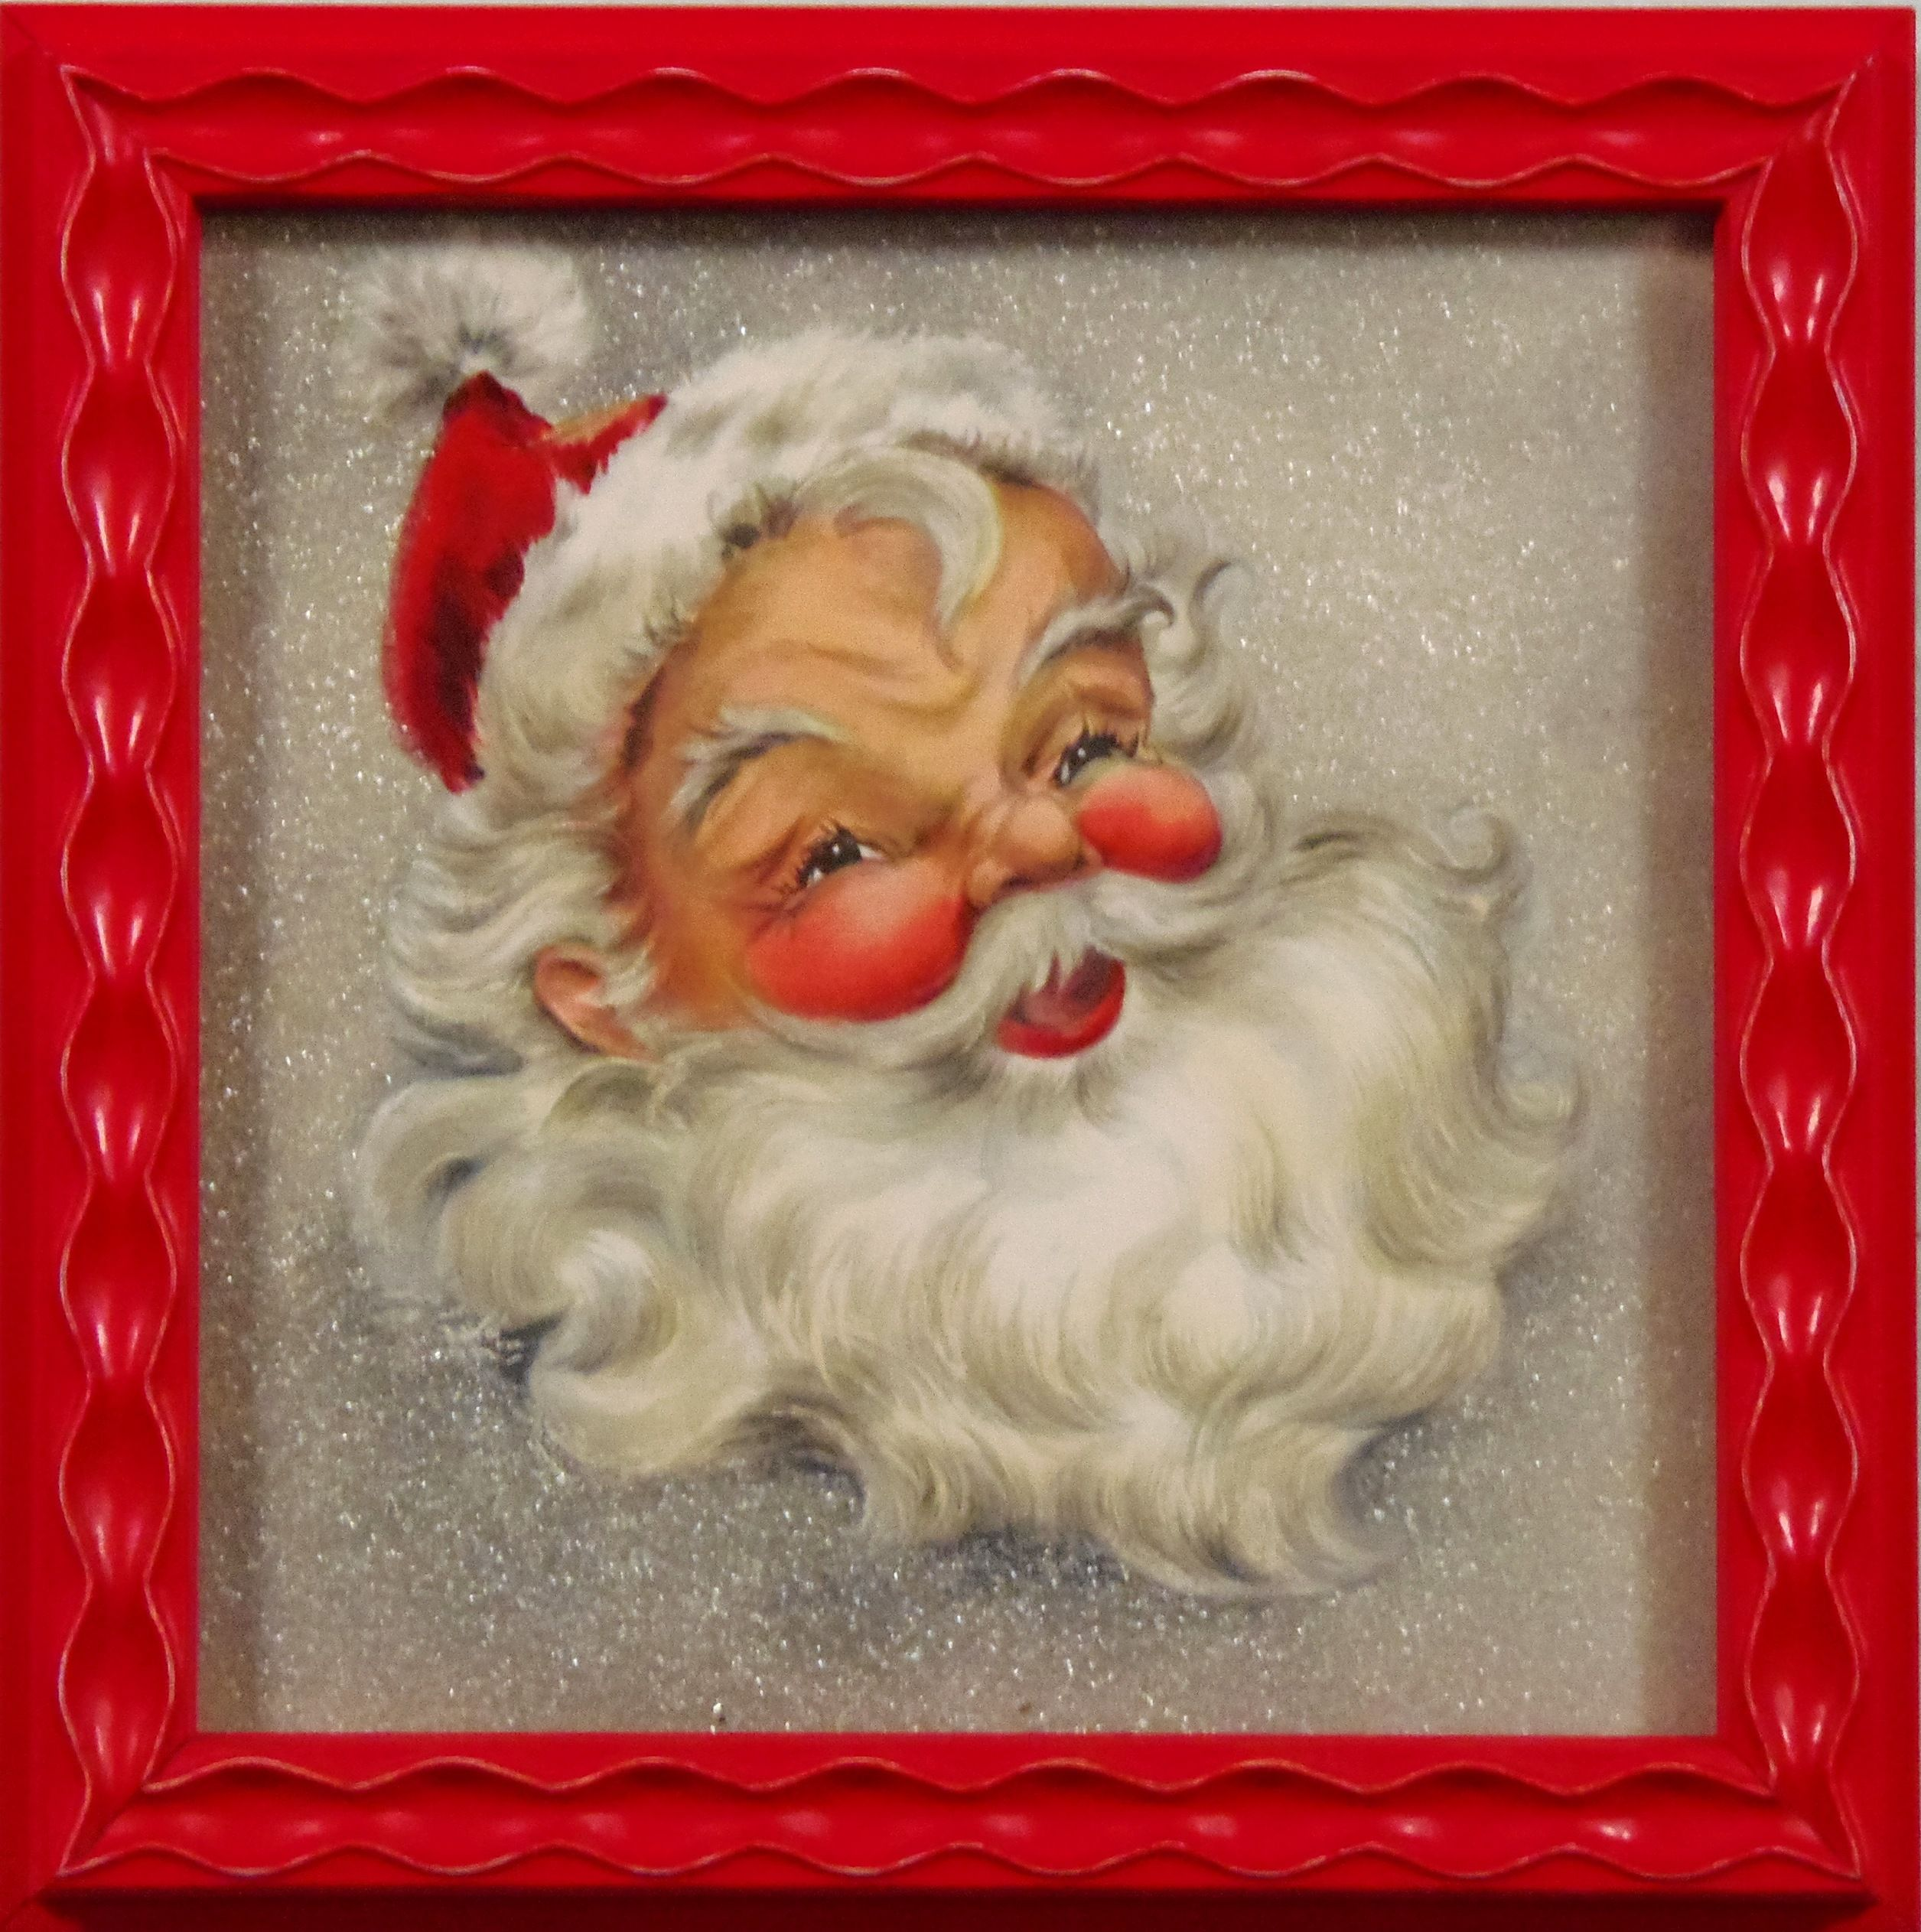 Custom framed santa bradleysaf holiday ideas pinterest custom framed santa bradleysaf jeuxipadfo Choice Image